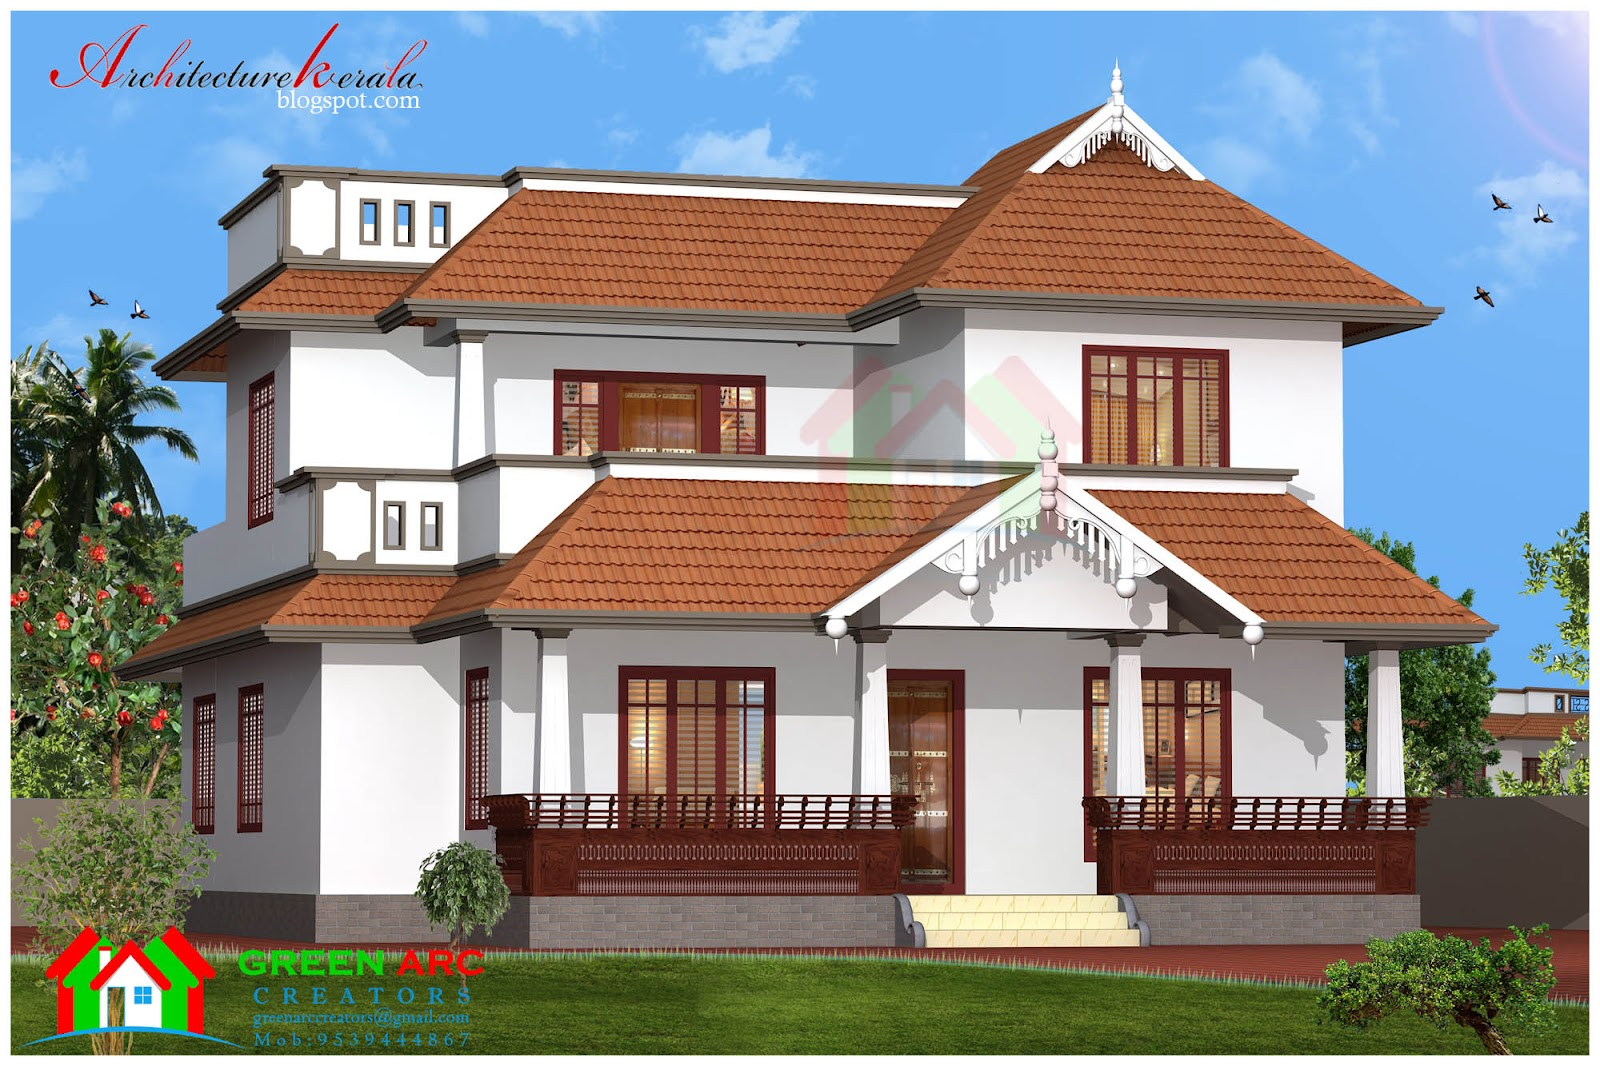 Architecture kerala traditional style kerala house plan for House plan design kerala style